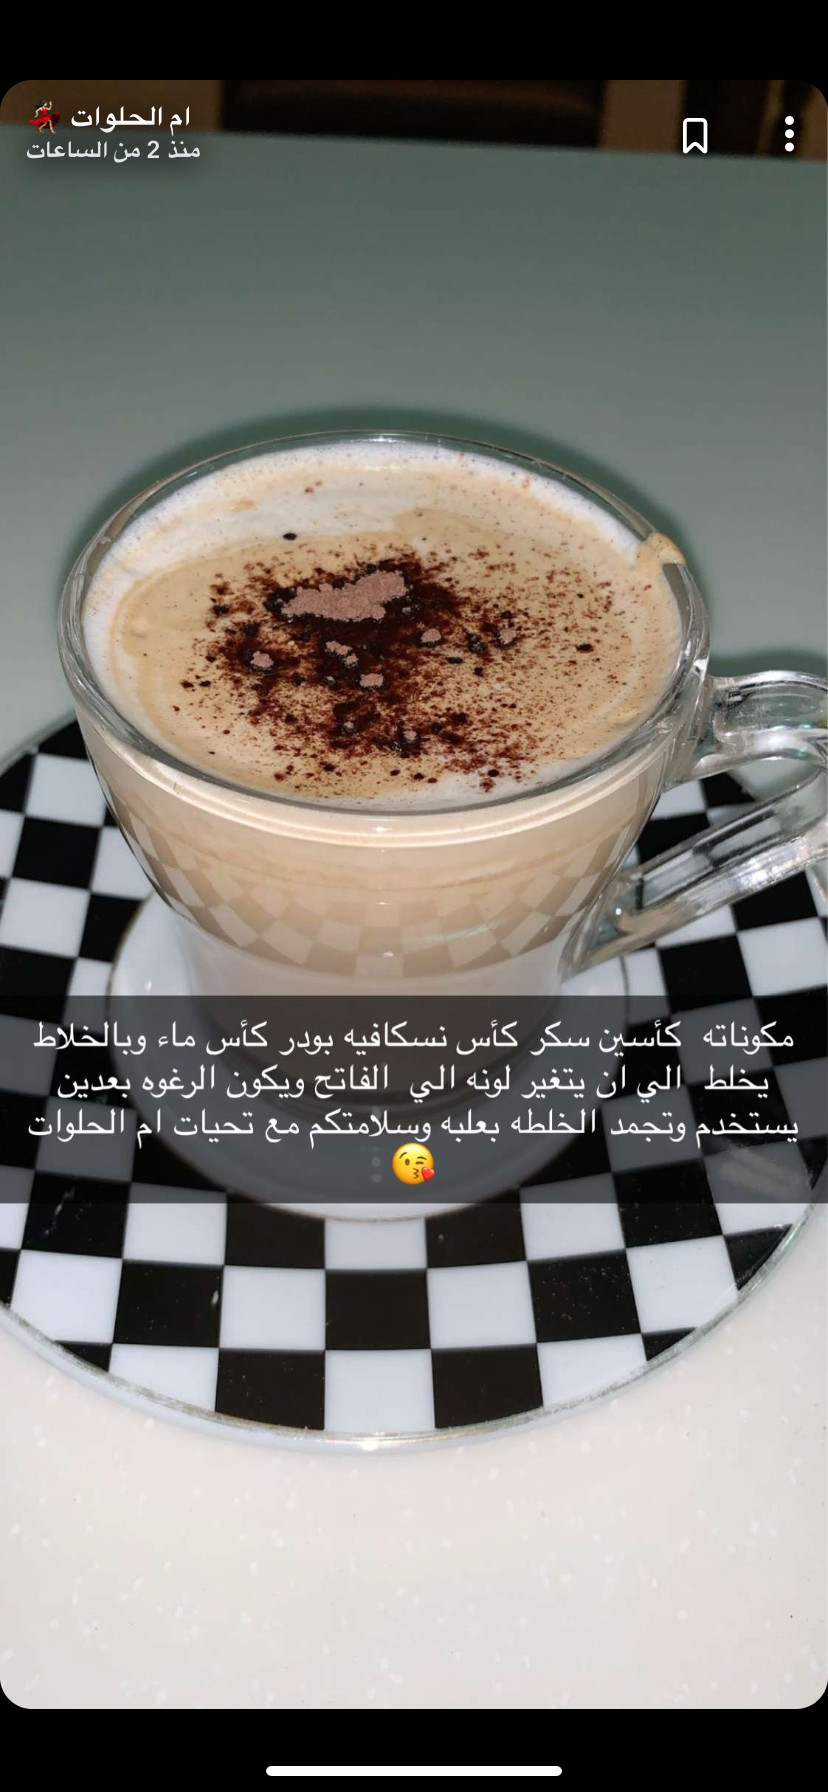 Pin By Hana On مشروبات Coffee Drink Recipes Coffee Recipes Arabian Food